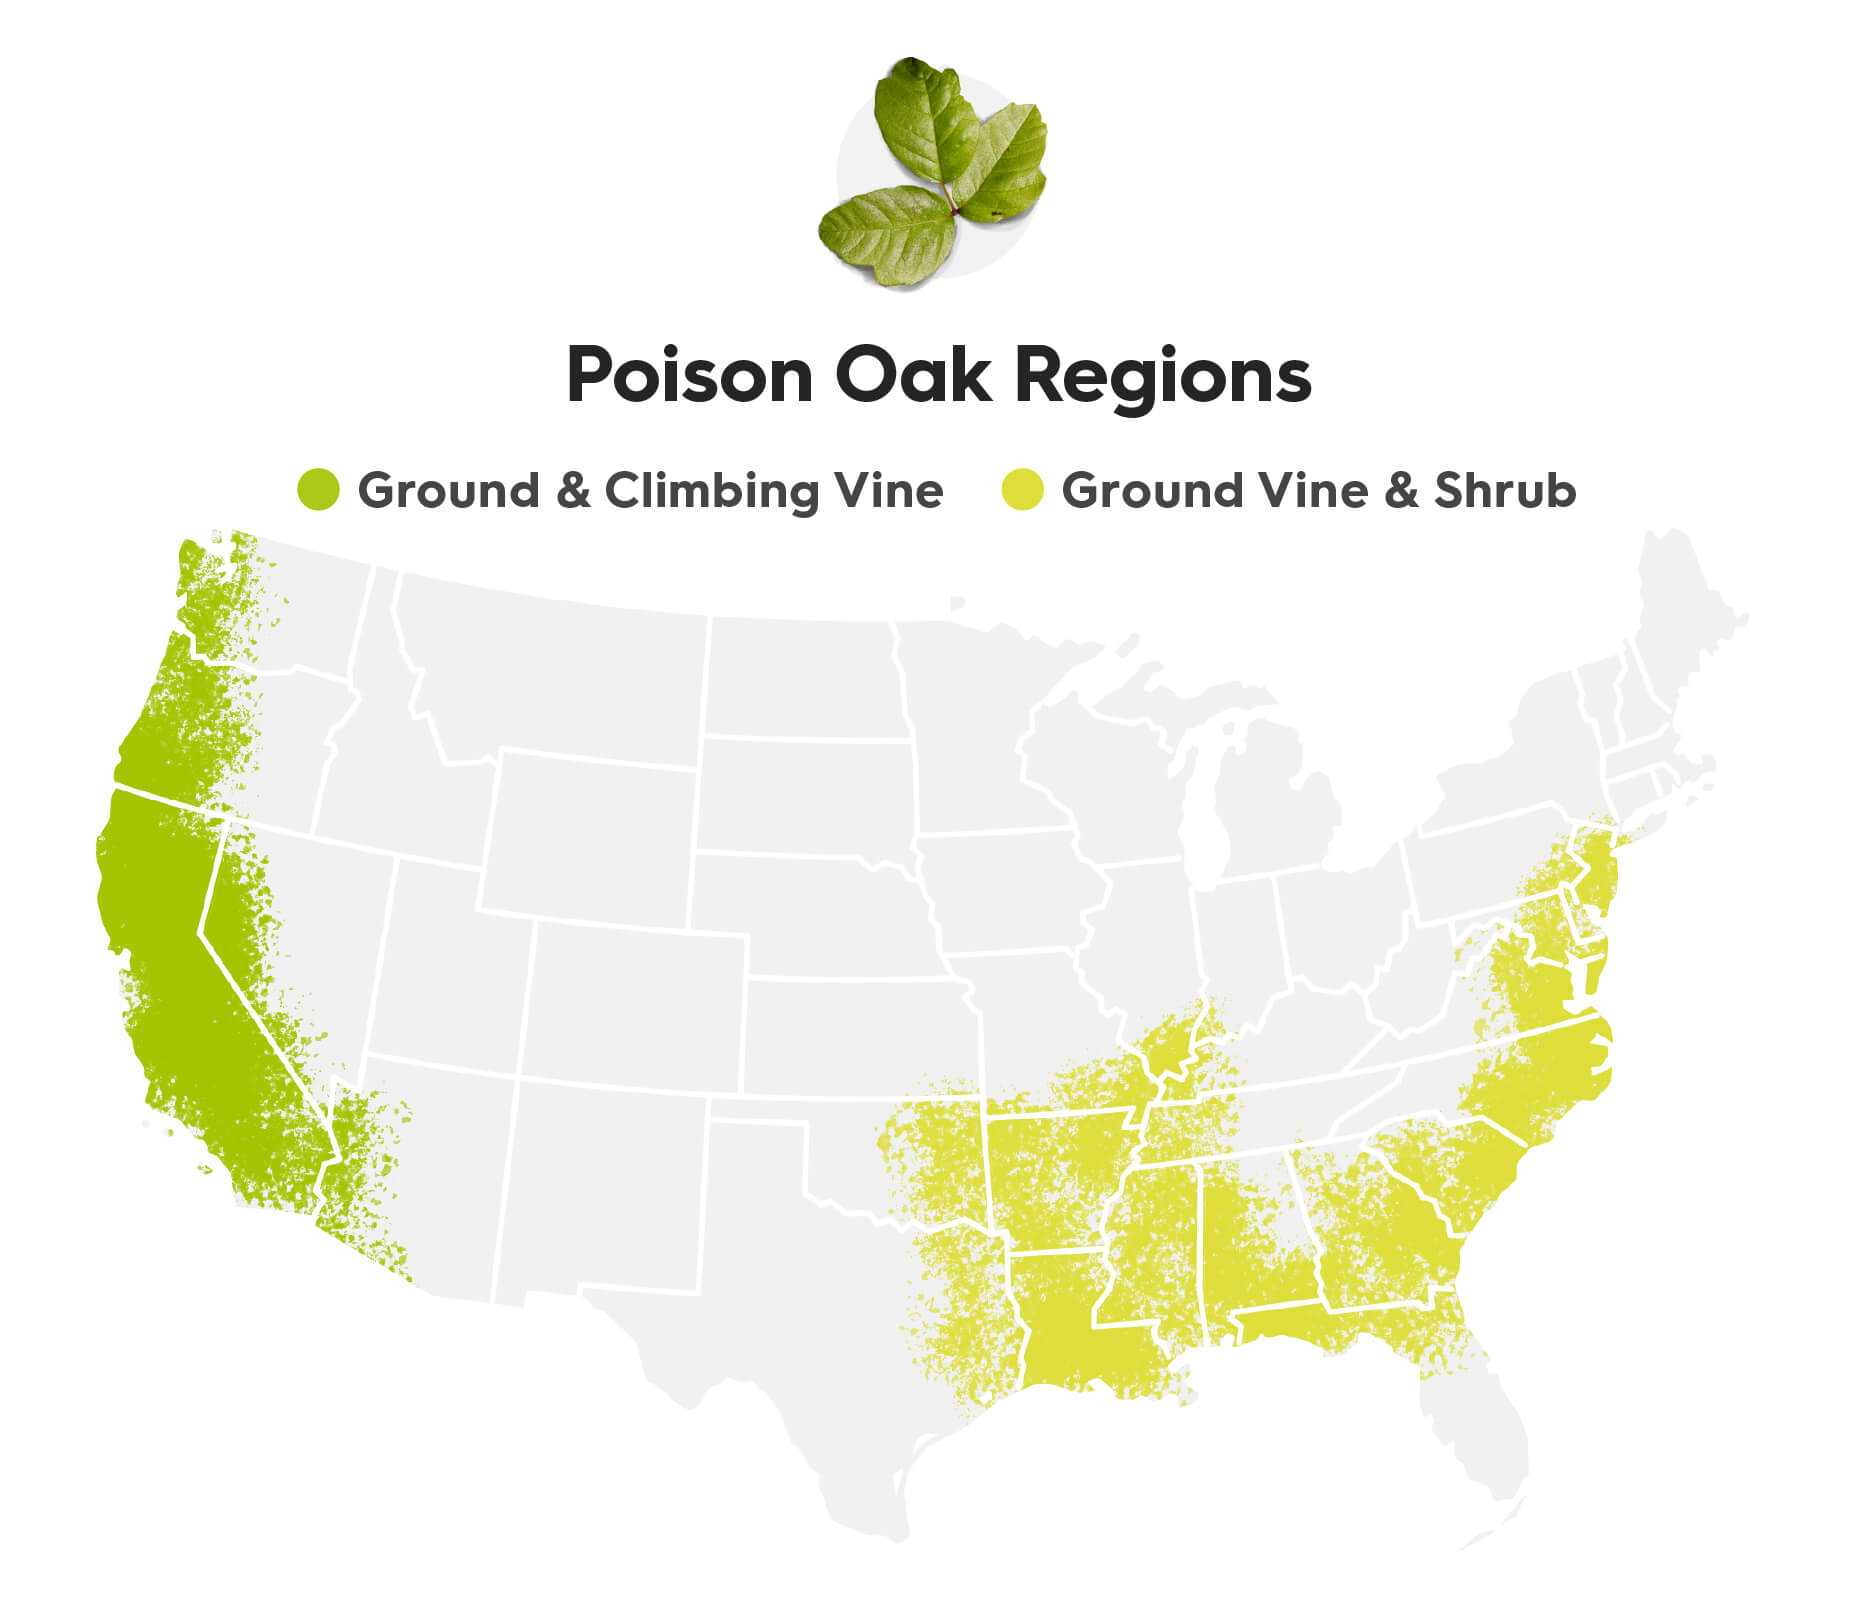 """A continental U.S. map showing the regions where the types of poison oak grow. The map key shows two groups of poison oak types; the first is """"ground and climbing vine"""" the second is """"Ground Vine and shrub"""". Keep reading to learn where to find each type. The states that have ground and climbing vine poison oak are: The western part of Washington, The western part of Oregon, California, western Nevada, and western Arizona. The states that grow ground vine and shrub poison oak are: Oklahoma, east Texas, Arkansas, Louisianan, Georgia, Alabama, Mississippi, North Carolina, South Carolina, Northern Florida, Eastern Virginia, and Maryland, D.C., Delaware, New Jersey, and eastern Pennsylvanian."""